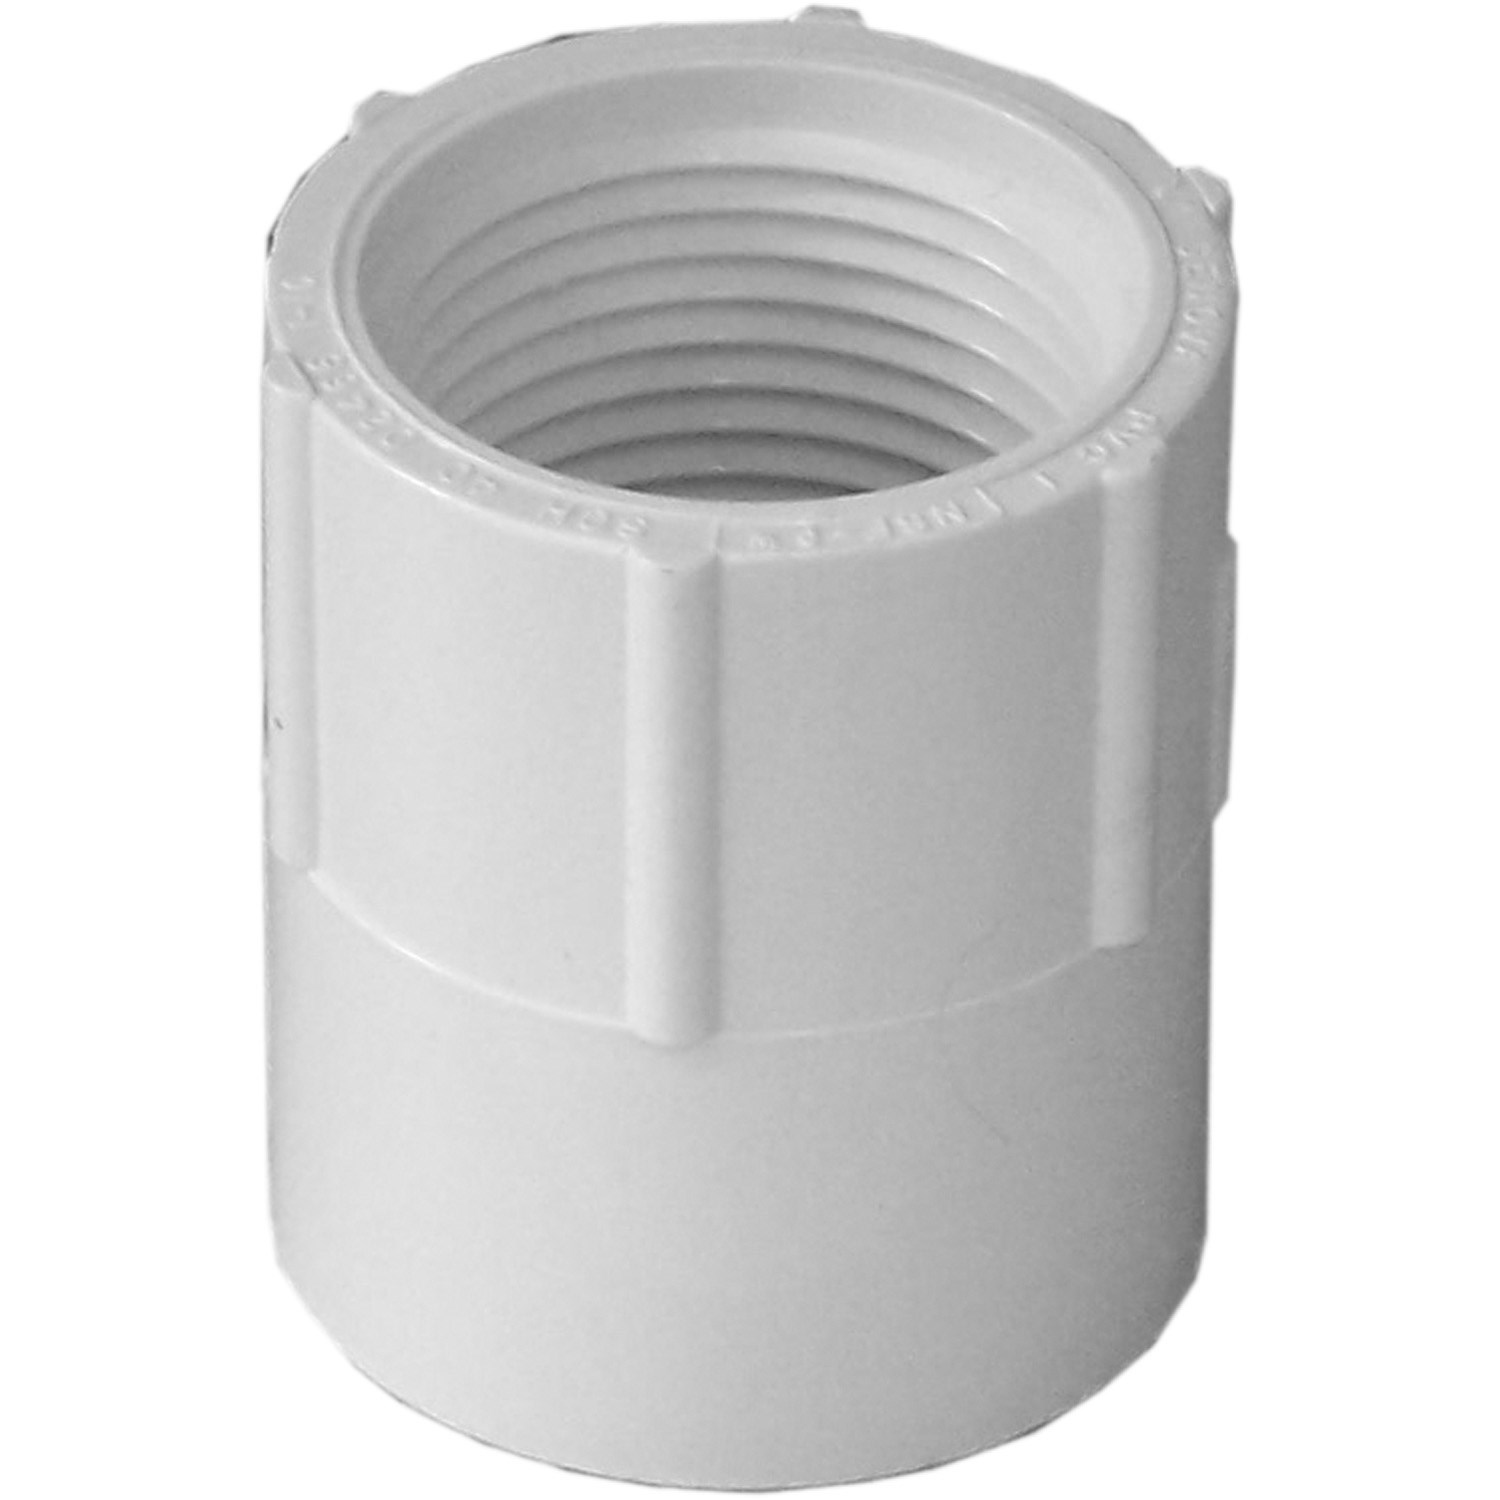 ADAPTER 3/4IN PVC FEMALE